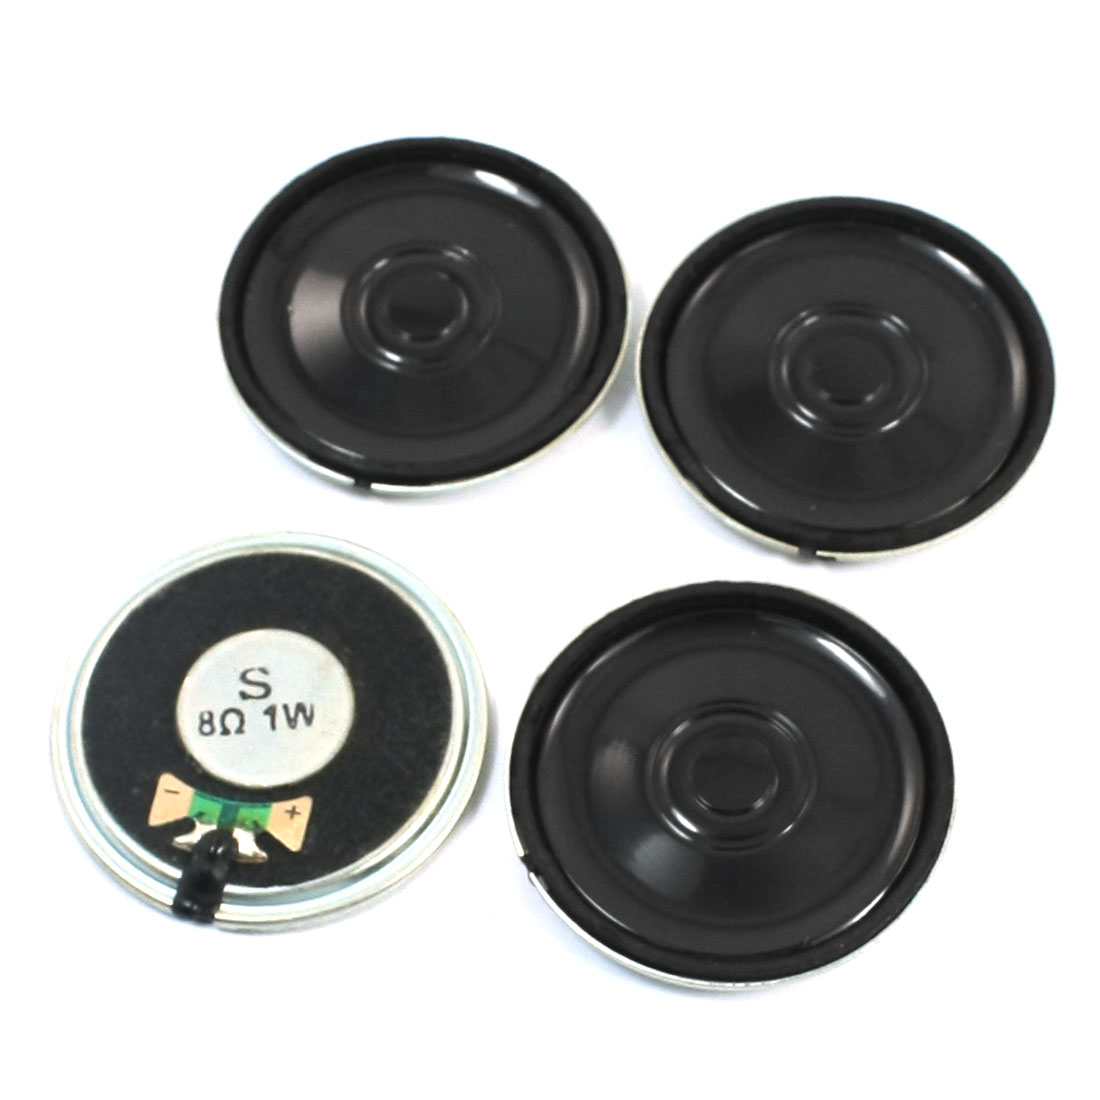 4Pcs 40mm Round Metal Shell Internal Magnet Speaker Audio Loudspeaker Interphone Trumpet 8 Ohm 1W